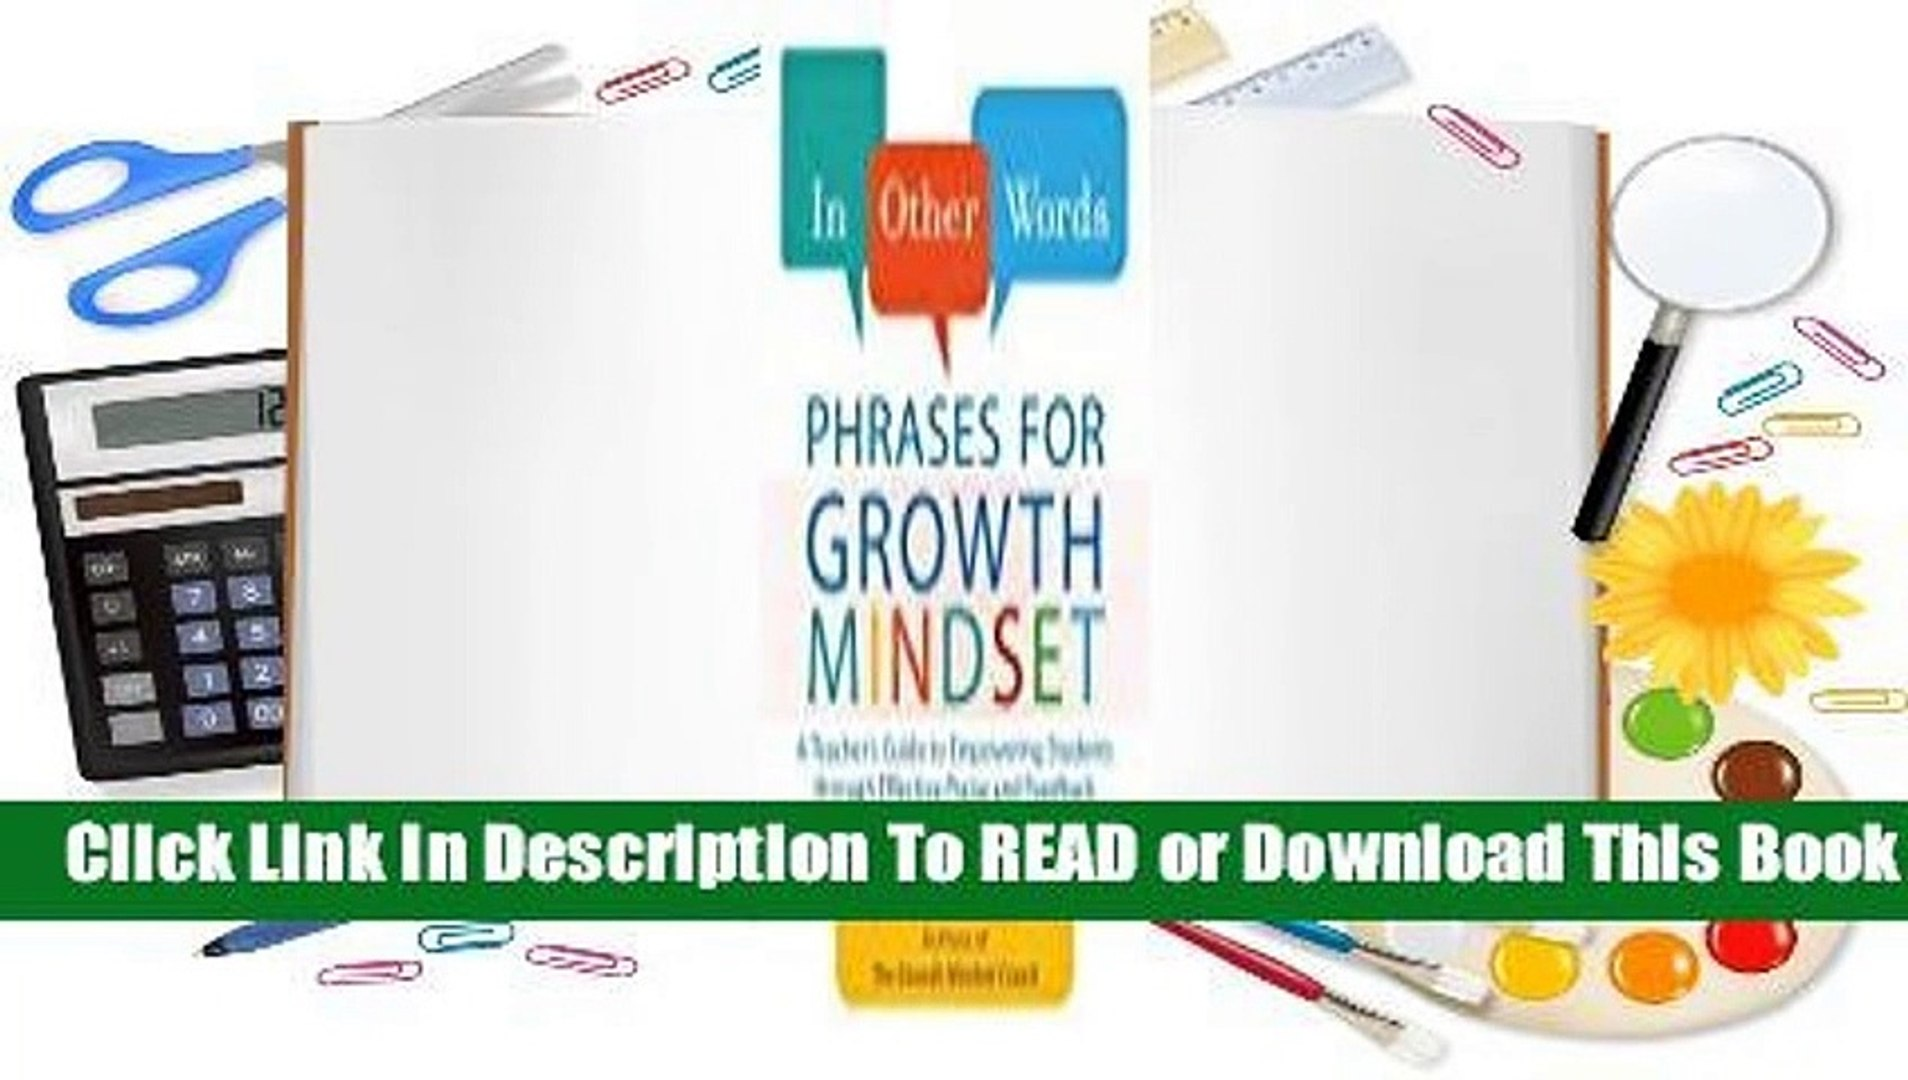 Online In Other Words: Phrases for Growth Mindset: A Teacher's Guide to Empowering Students